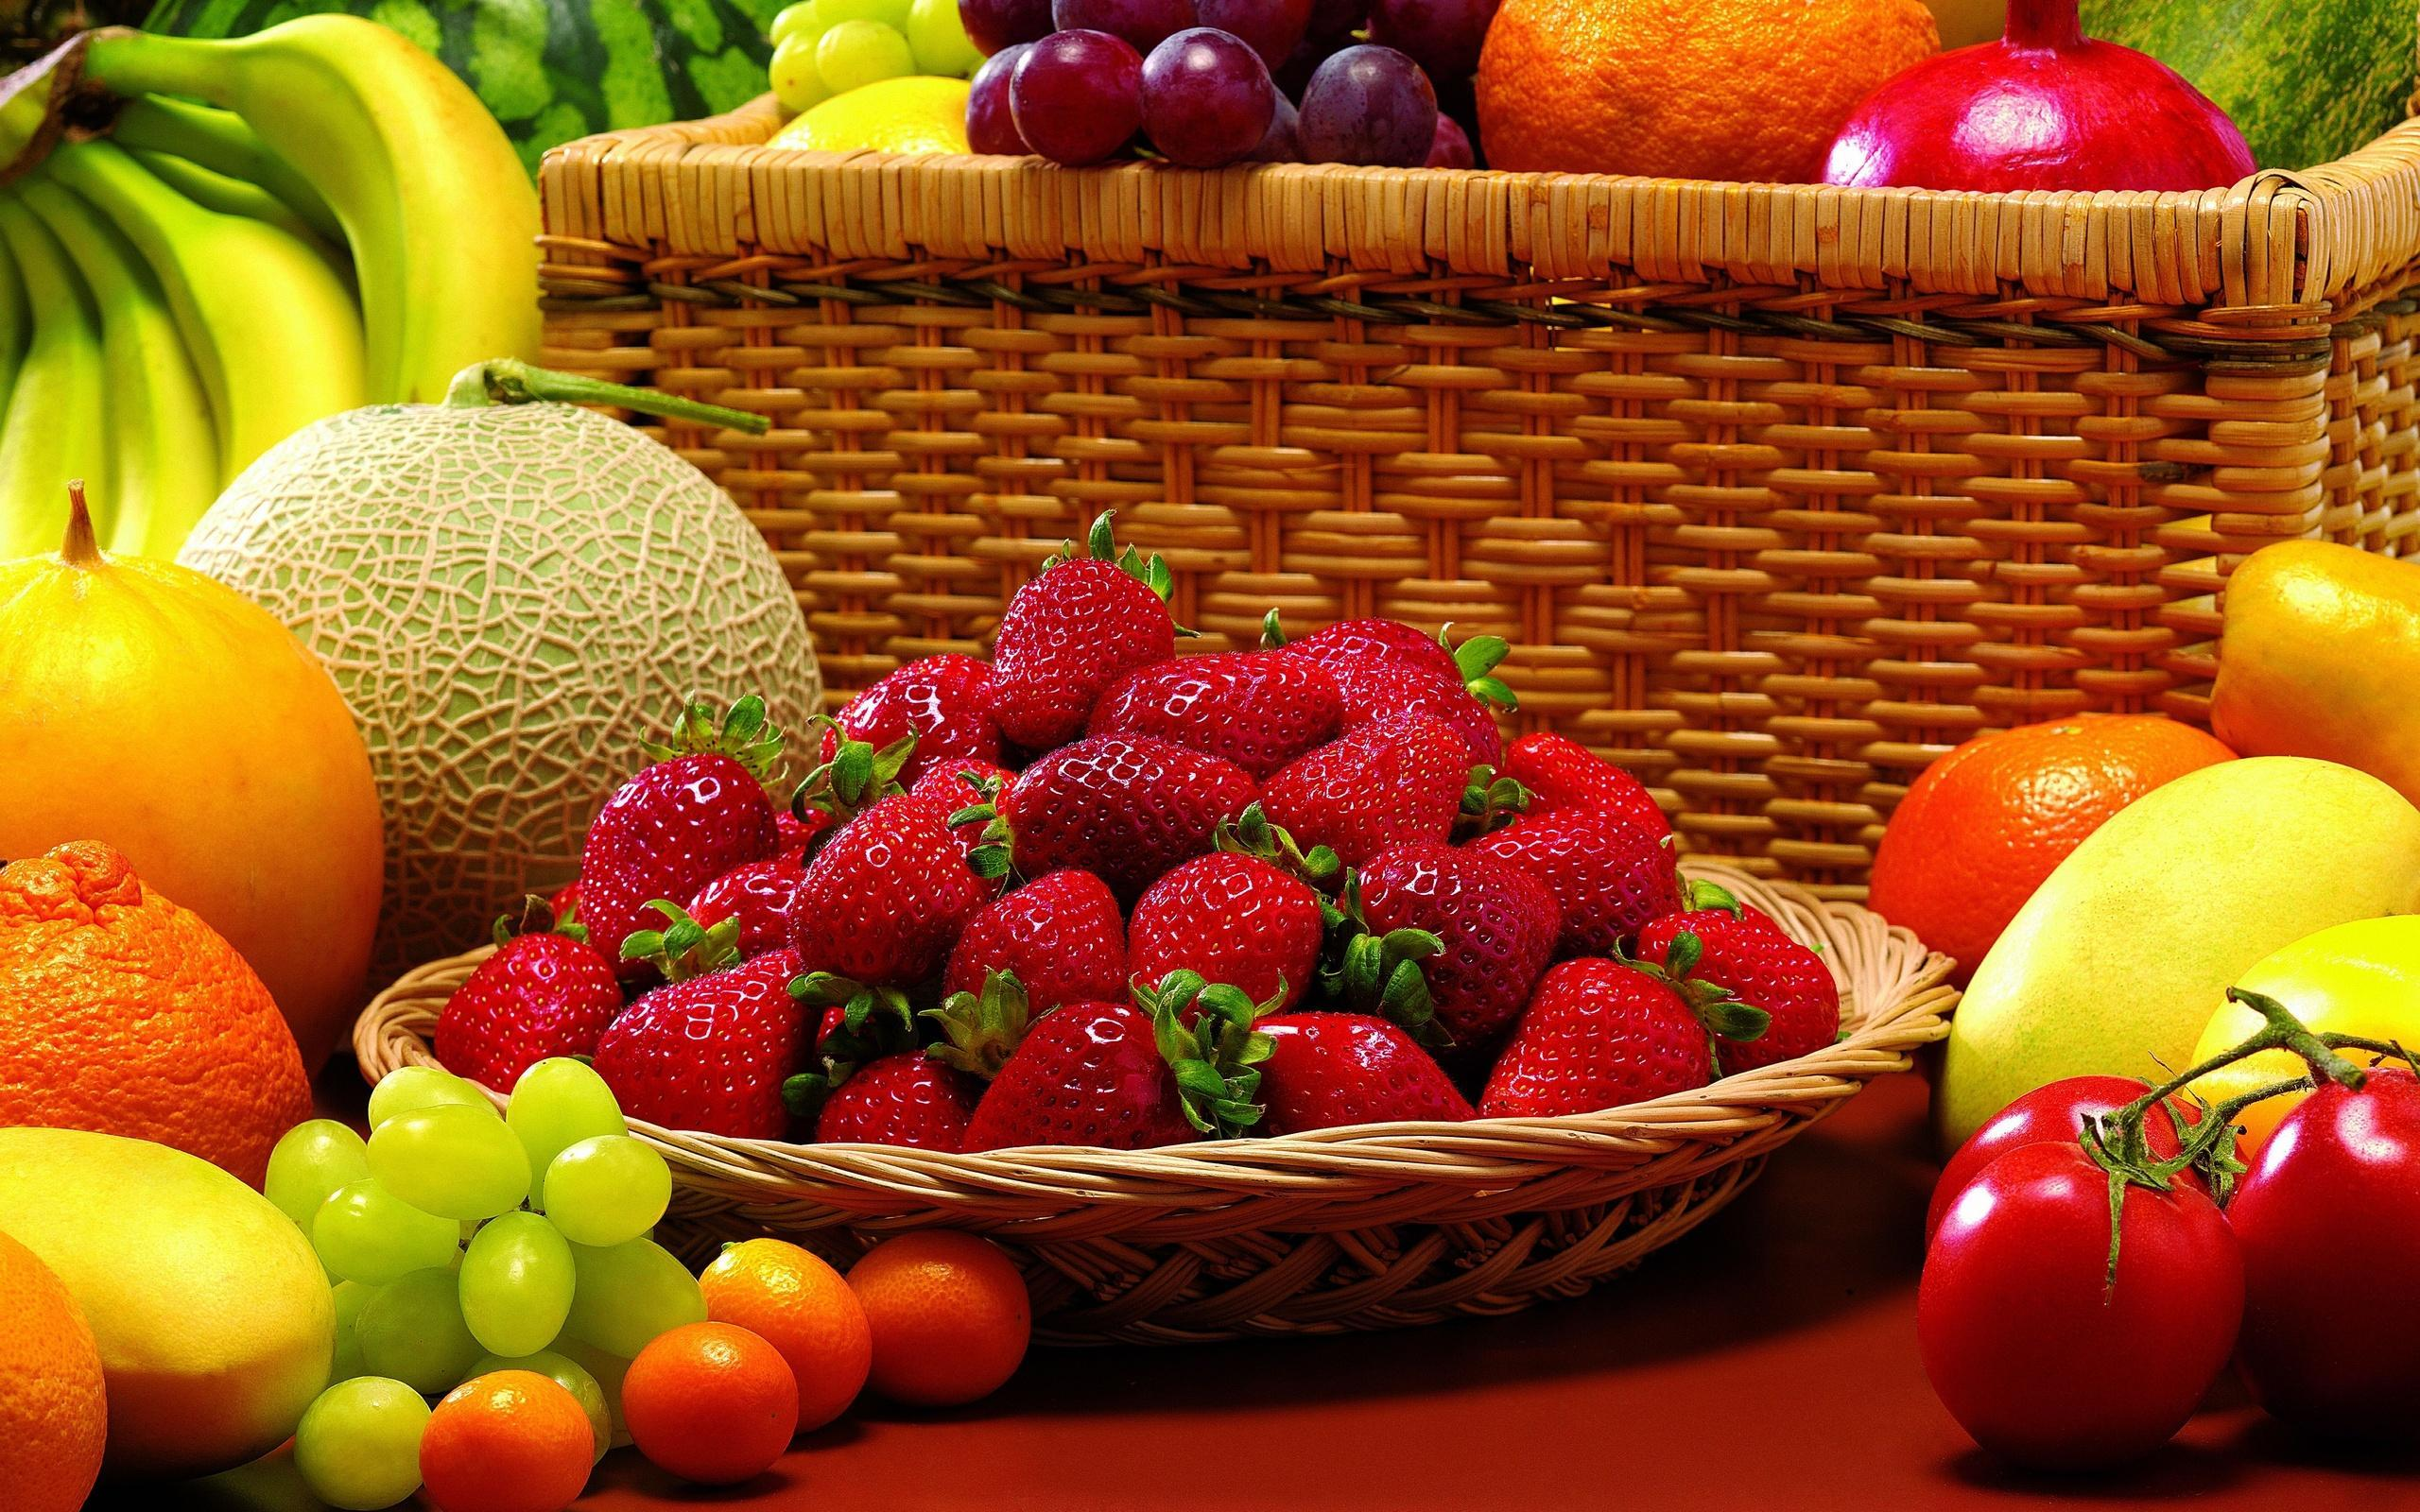 Fruit Wallpaper 2018 Pictures HD Images for Android   APK 2560x1600